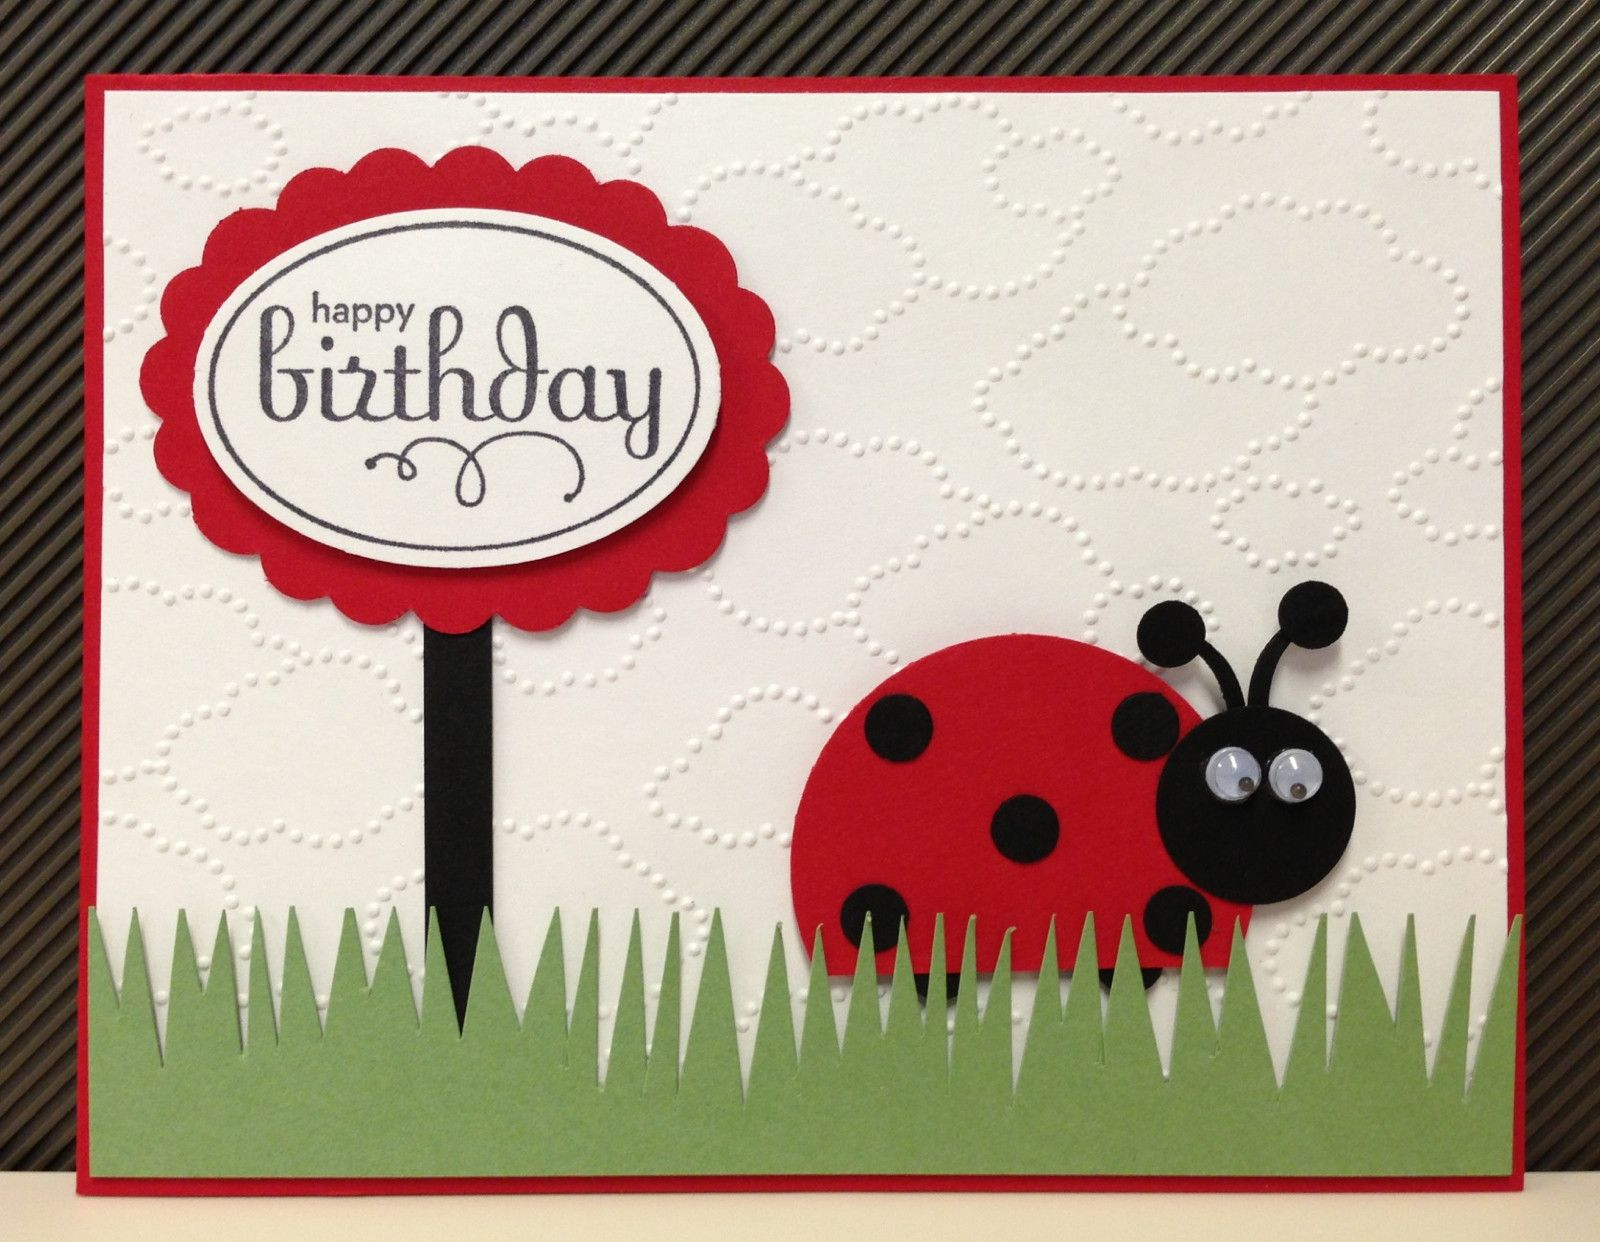 Ladybug punch art stampinu up birthday card kit cards punch